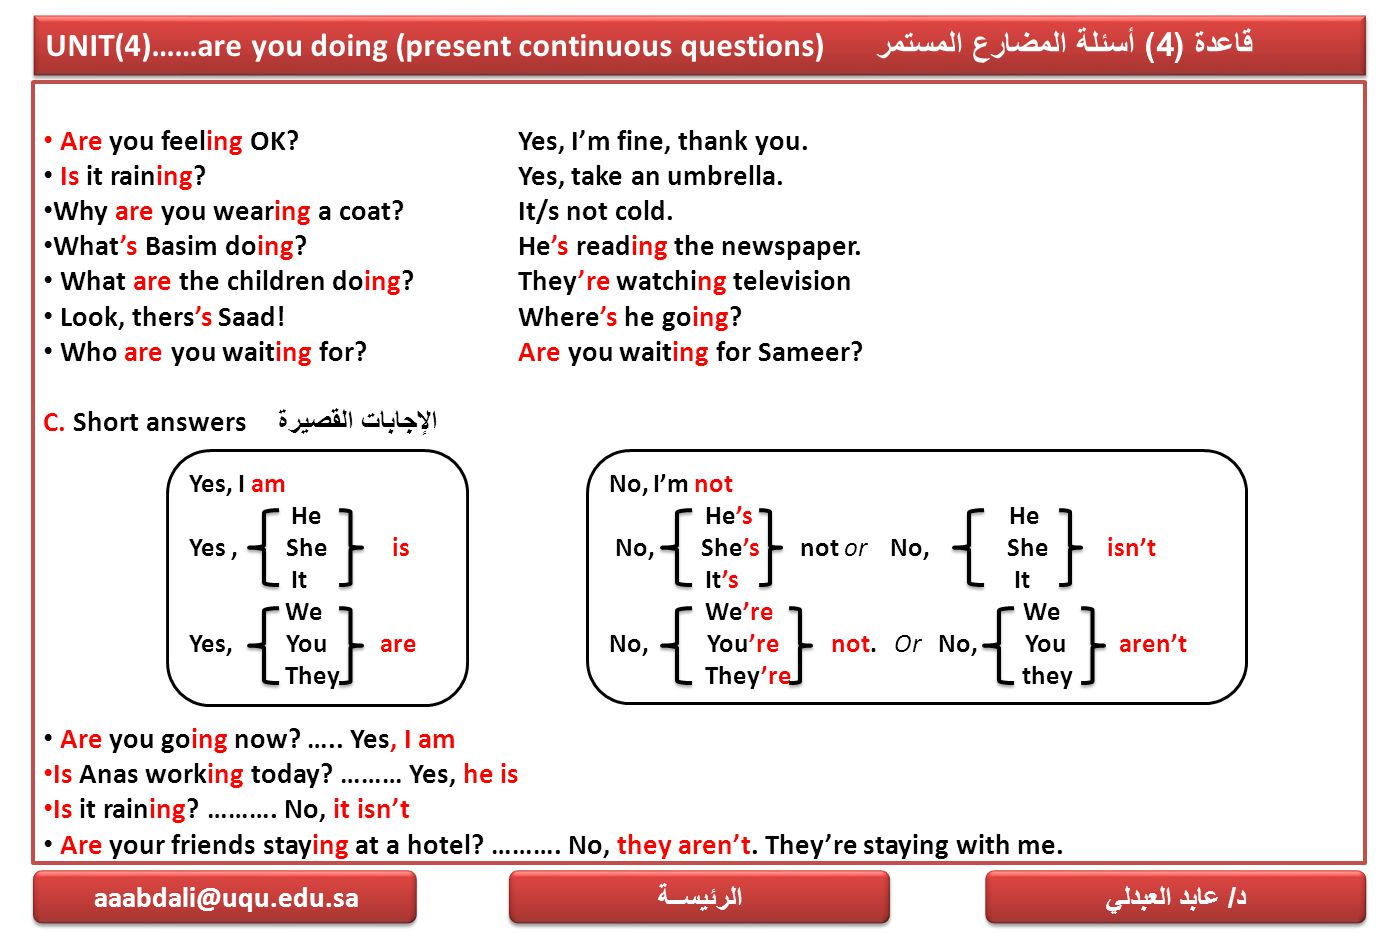 UNIT(4)……are you doing (present continuous questions)